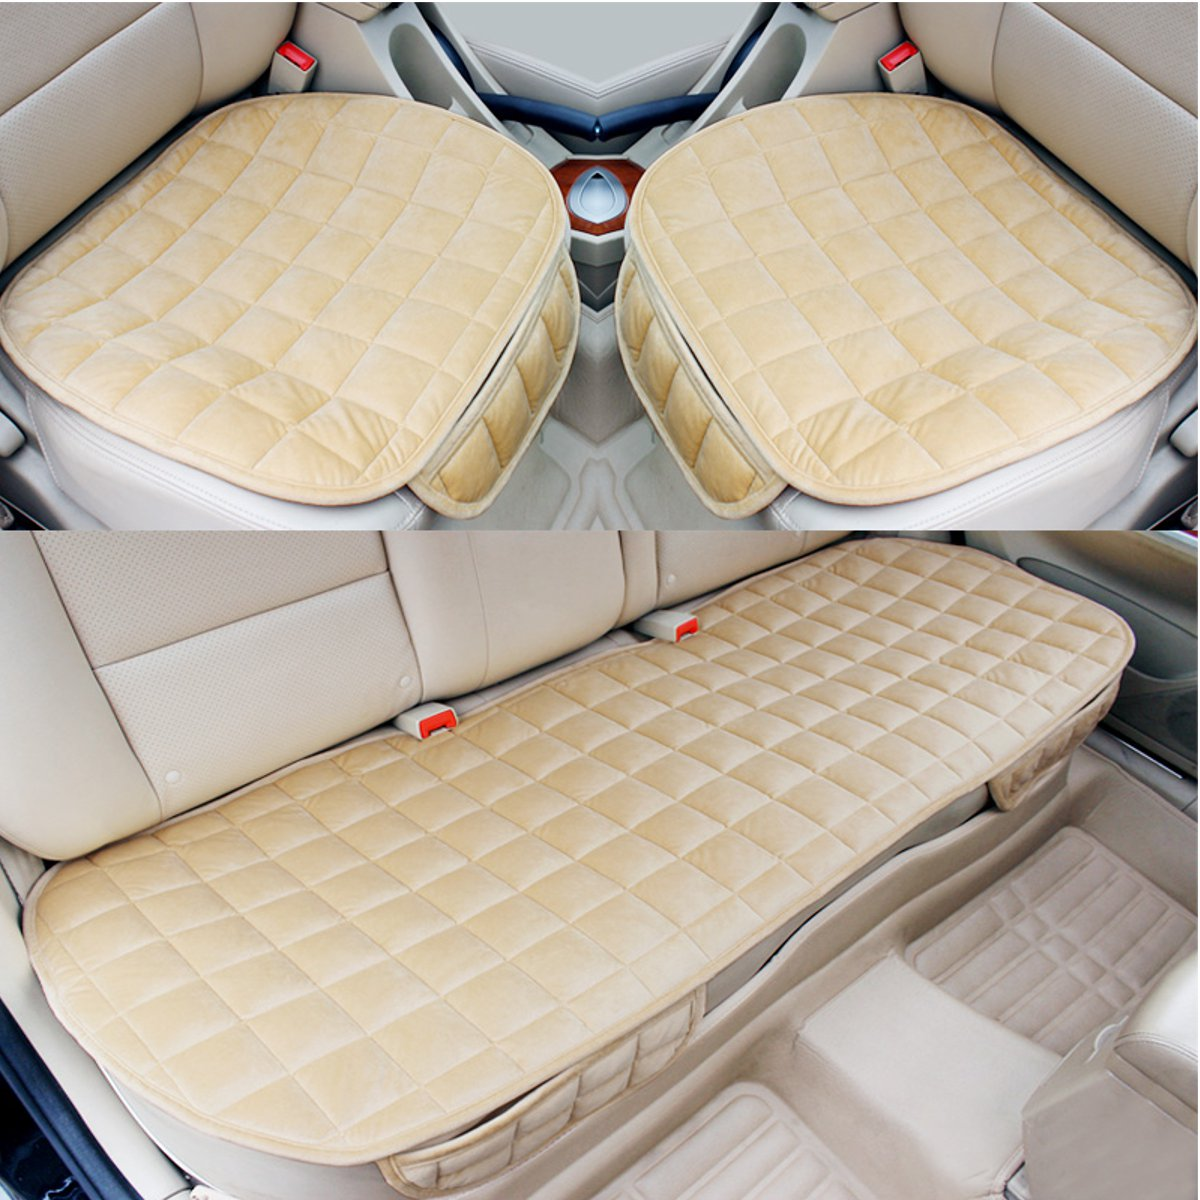 Black Universal Car Rear Seat Protection Interior Cushion Pad Mat Scratch Proof Nonslip Plush Back Seat Cover Breathable Rear Bench Pad Universal for Cars,Pet,Home Long Sofa